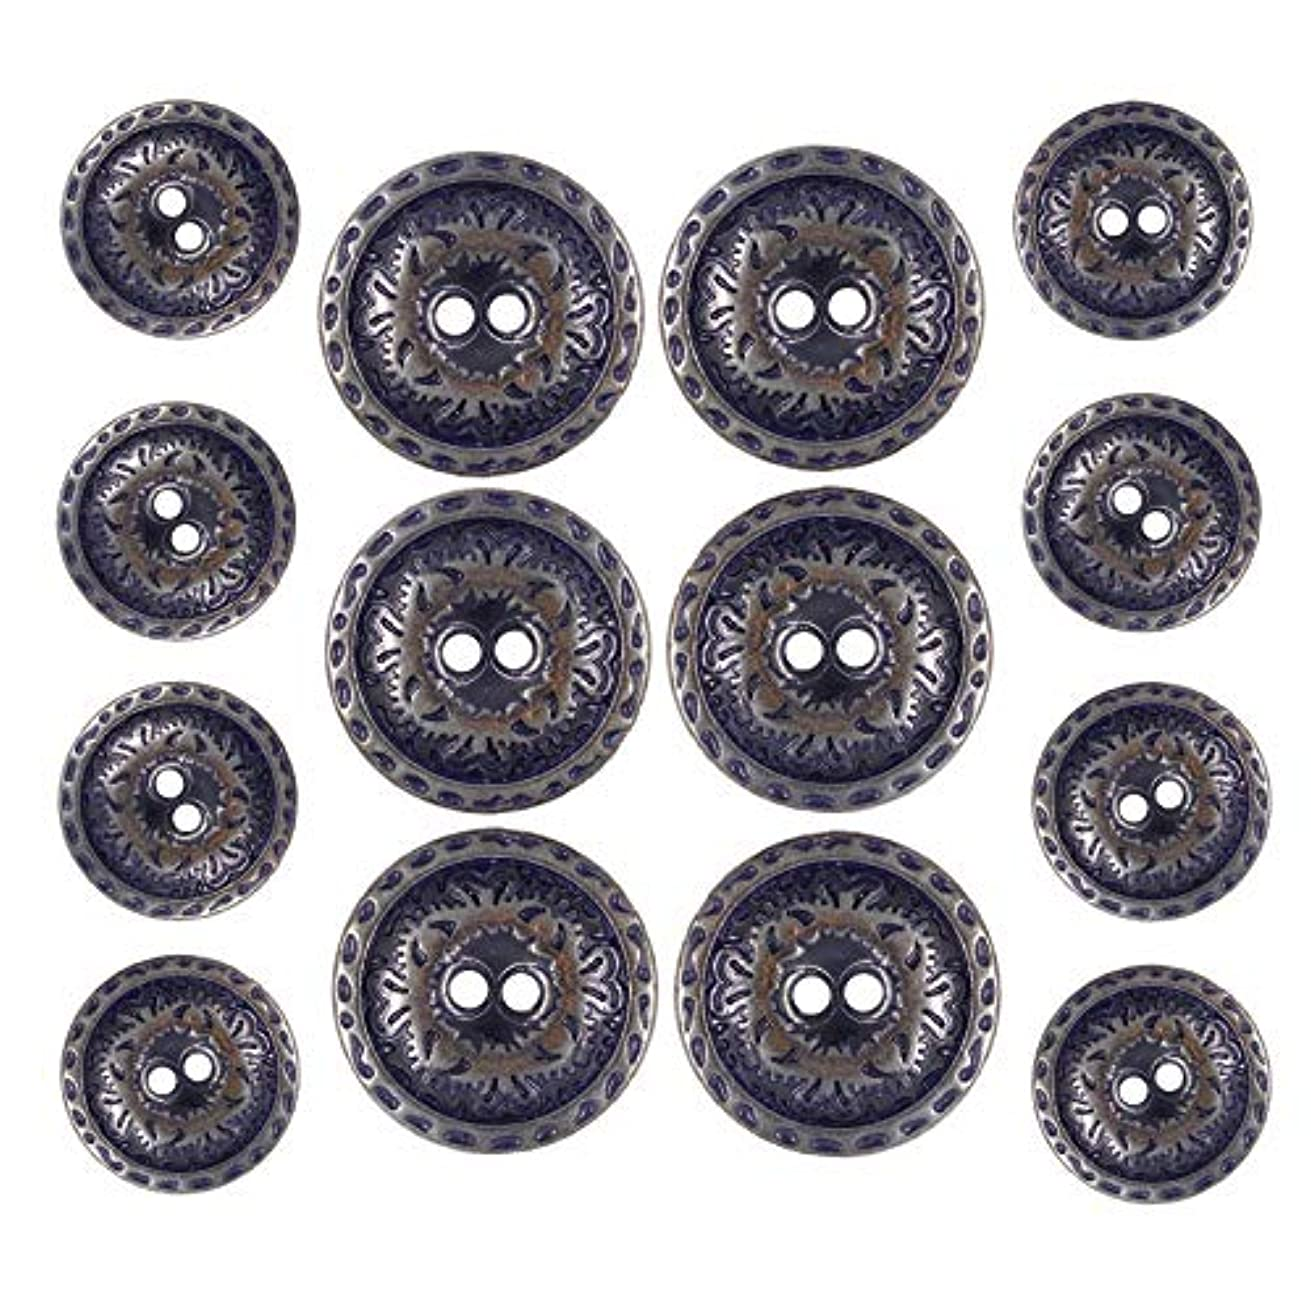 Bezelry Dark Copper and Blue Metal Hole Blazer Button Set. 6 Pcs of 23mm, 8 Pcs of 15mm